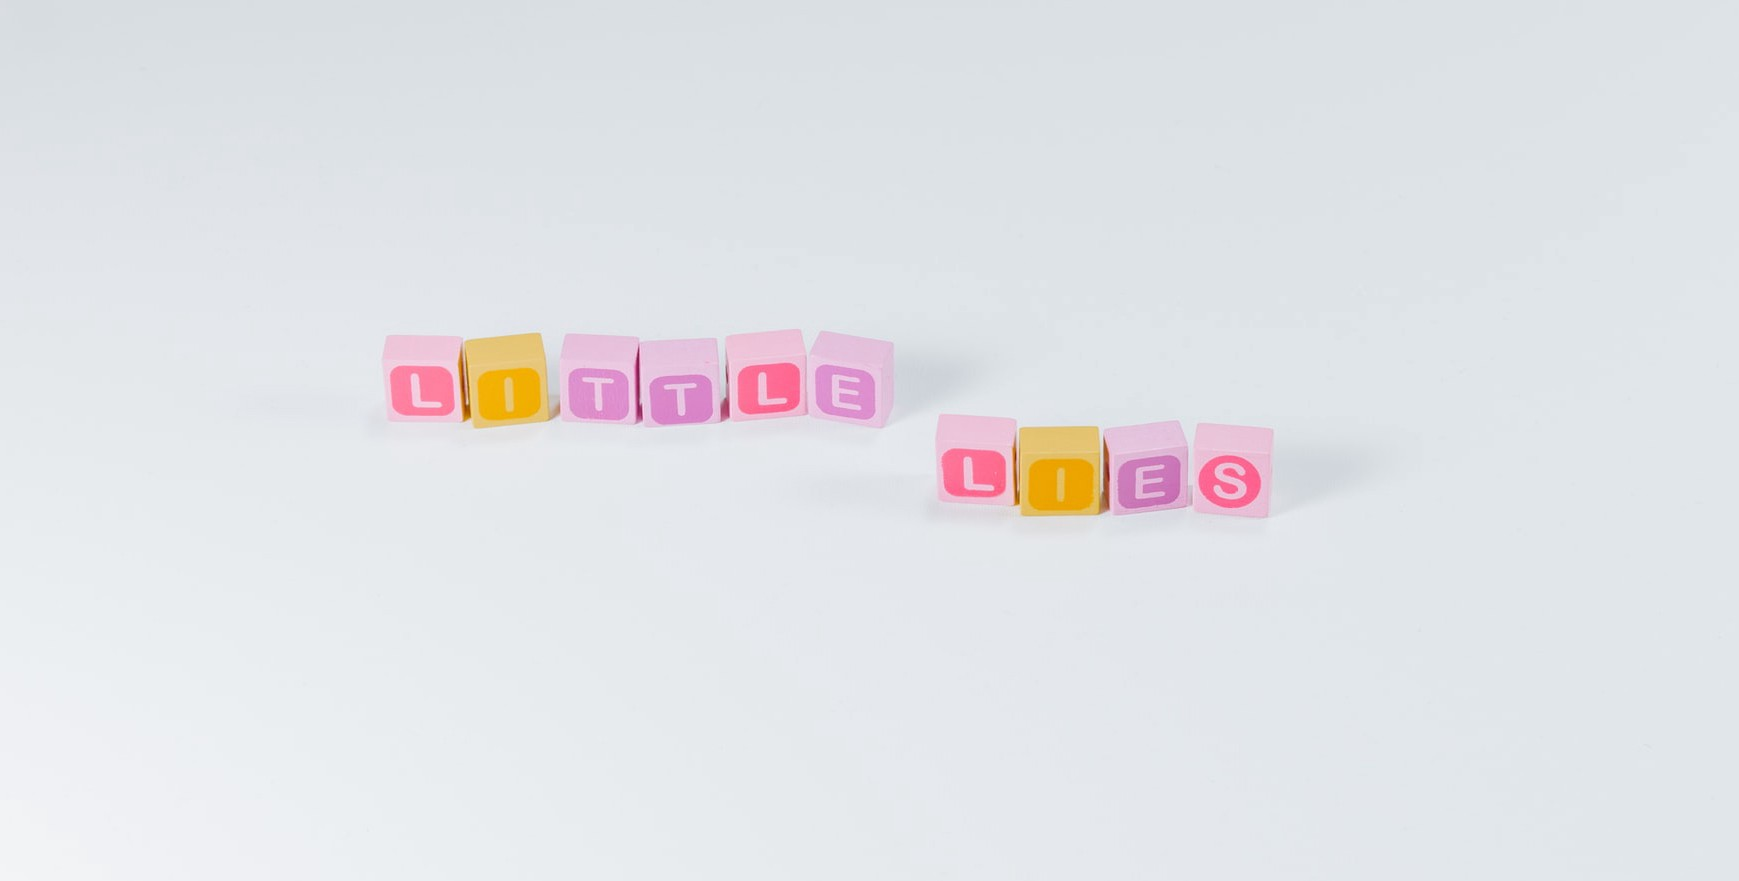 Colorful blocks of letters arranged to spell out the phrase little lies.